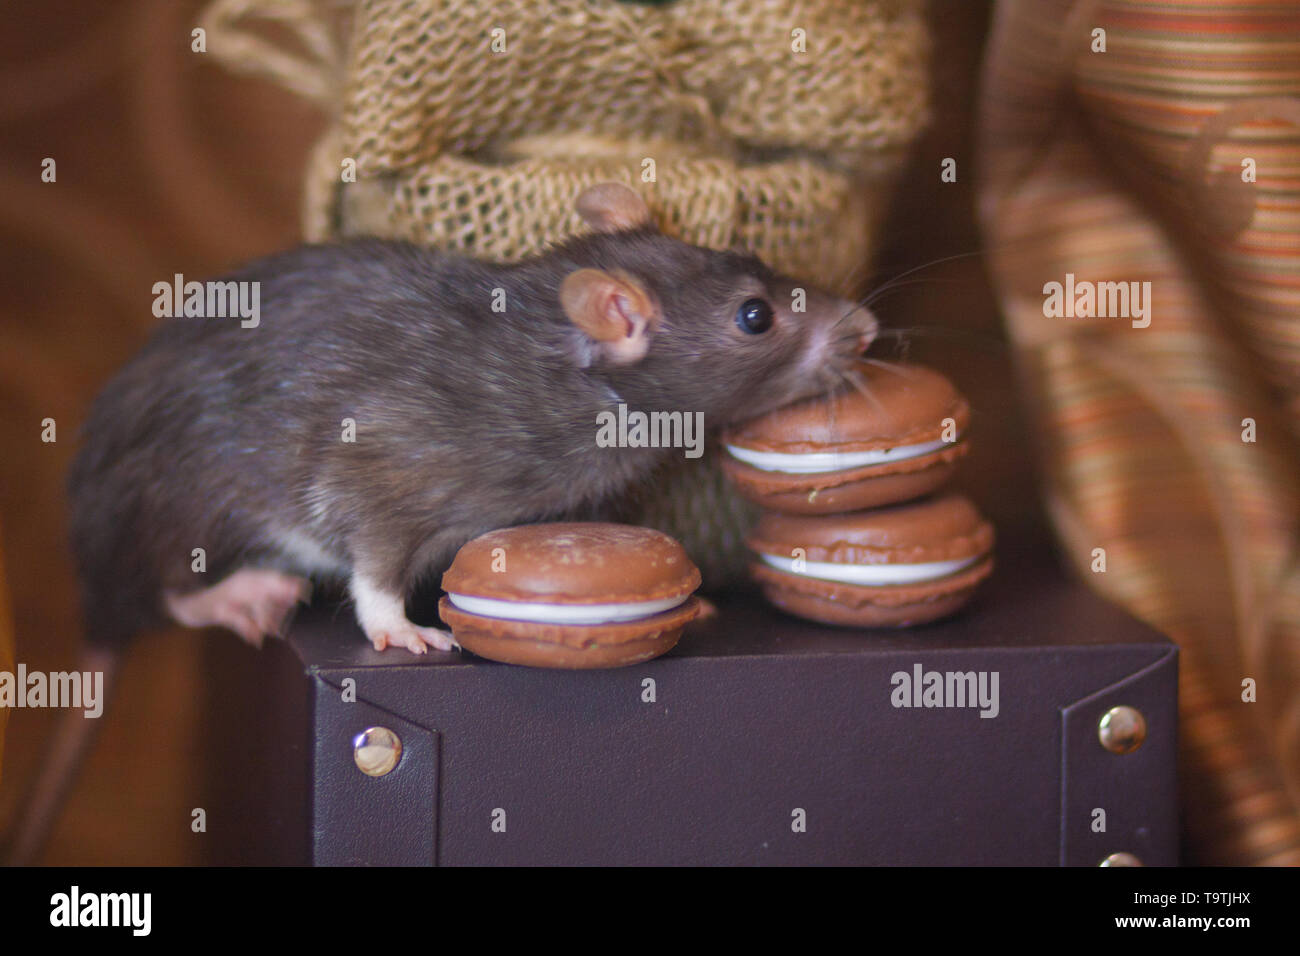 Concept of diet. Rat with sweets. Mouse sniffs food. Rodent with cookies. - Stock Image